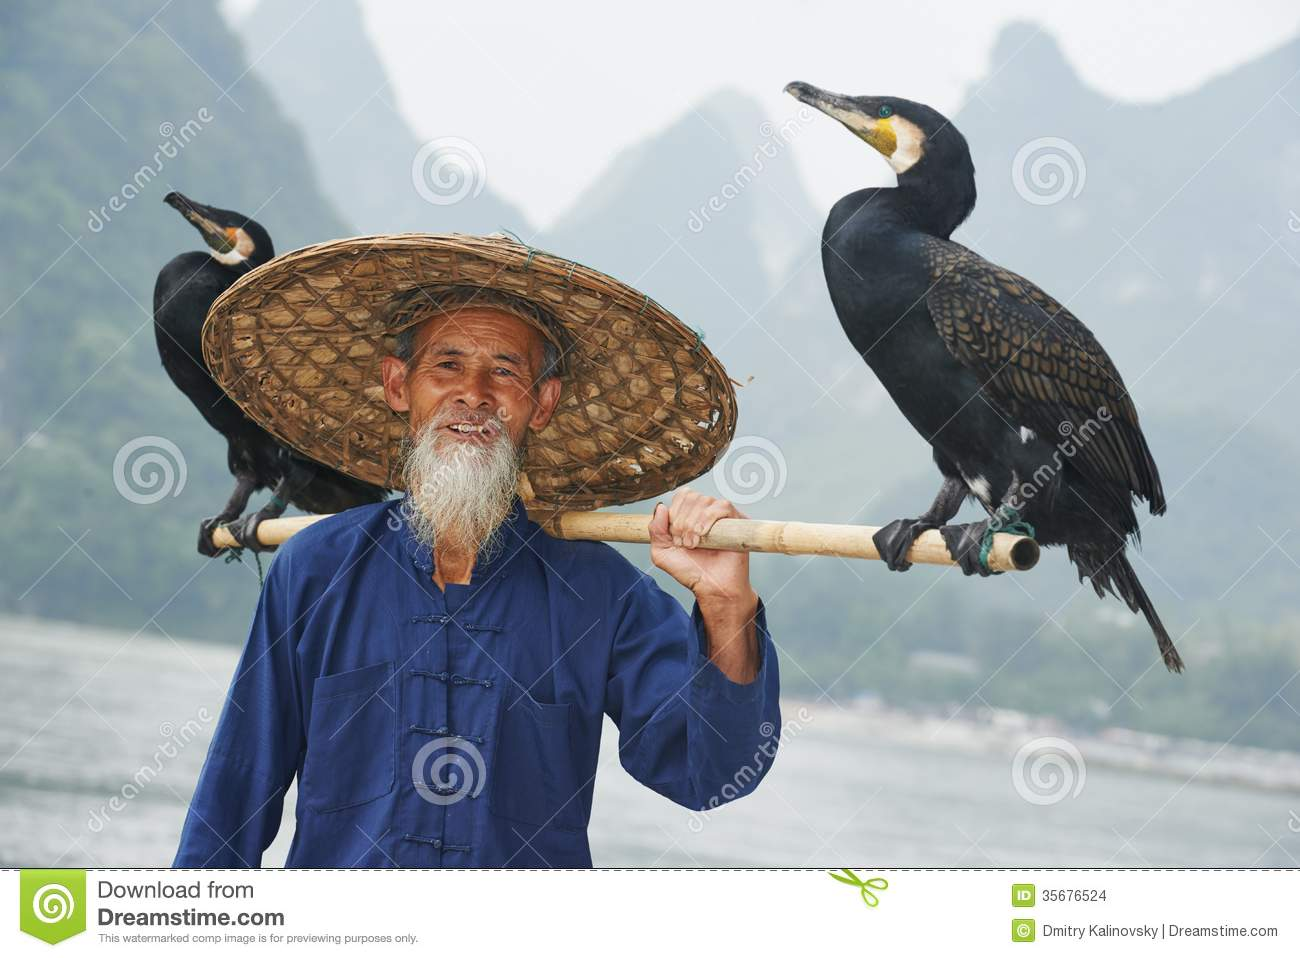 1d3c837f3ca Chinese Old Person With Cormorant For Fishing Stock Photo - Image of ...